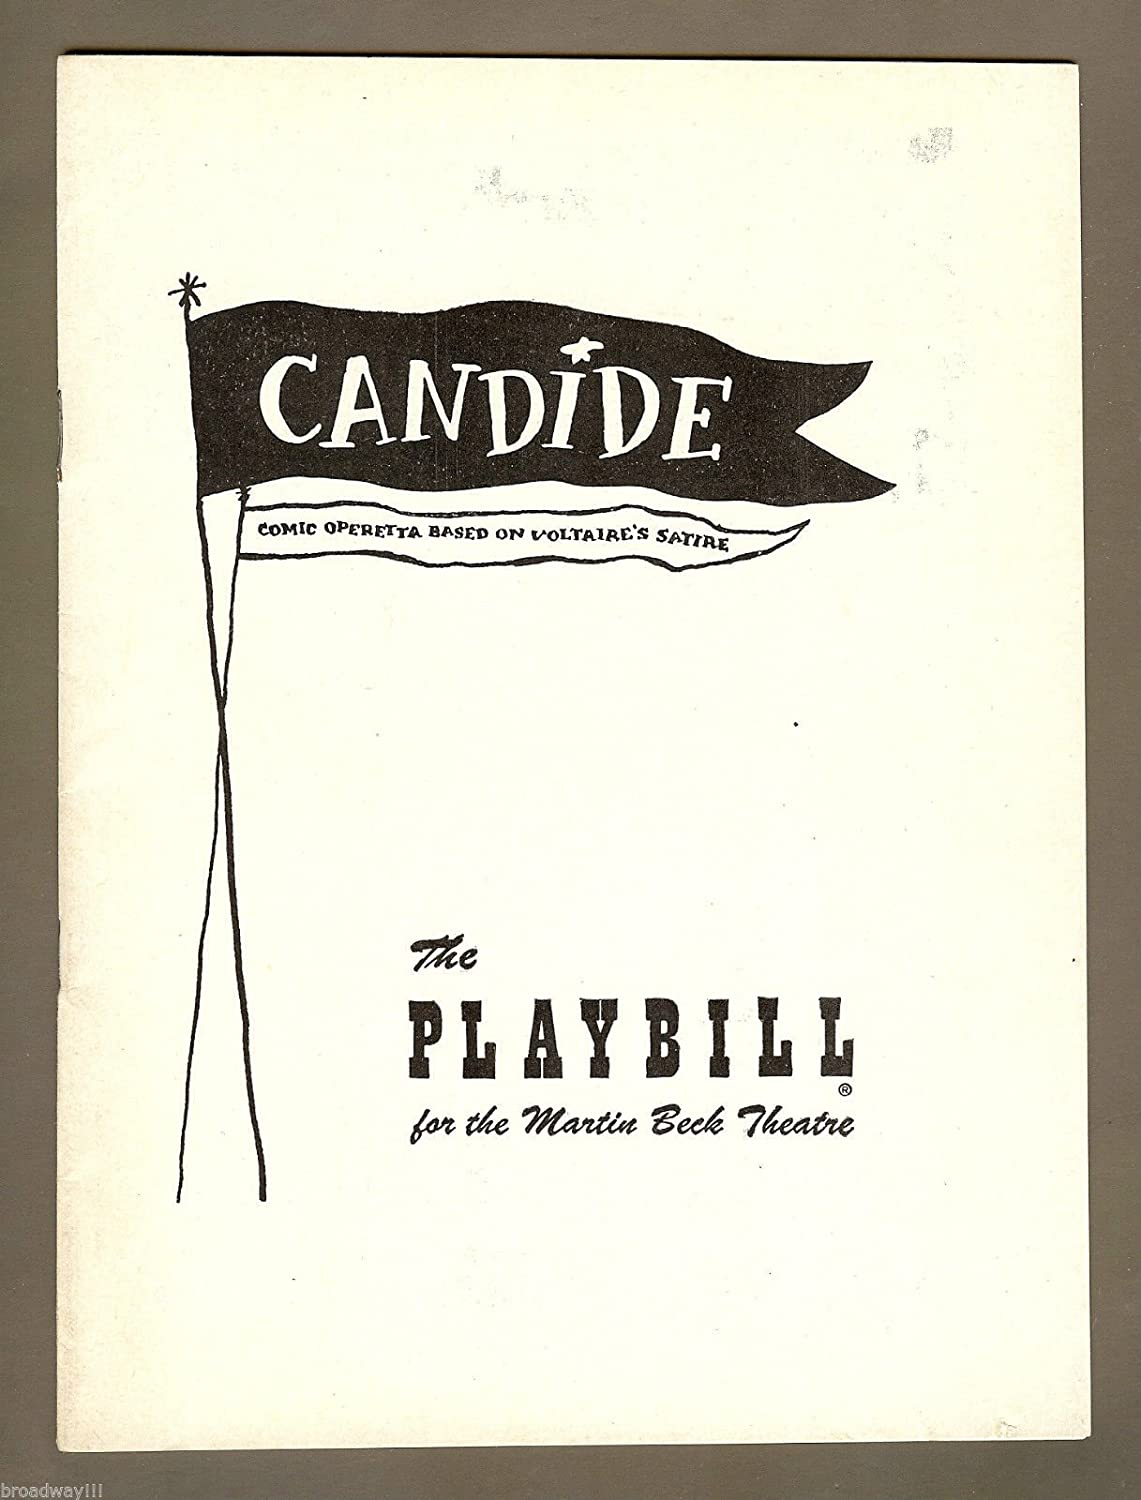 Barbara Cook 'CANDIDE' Leonard Bernstein / Opening Night 1956 Broadway Playbill